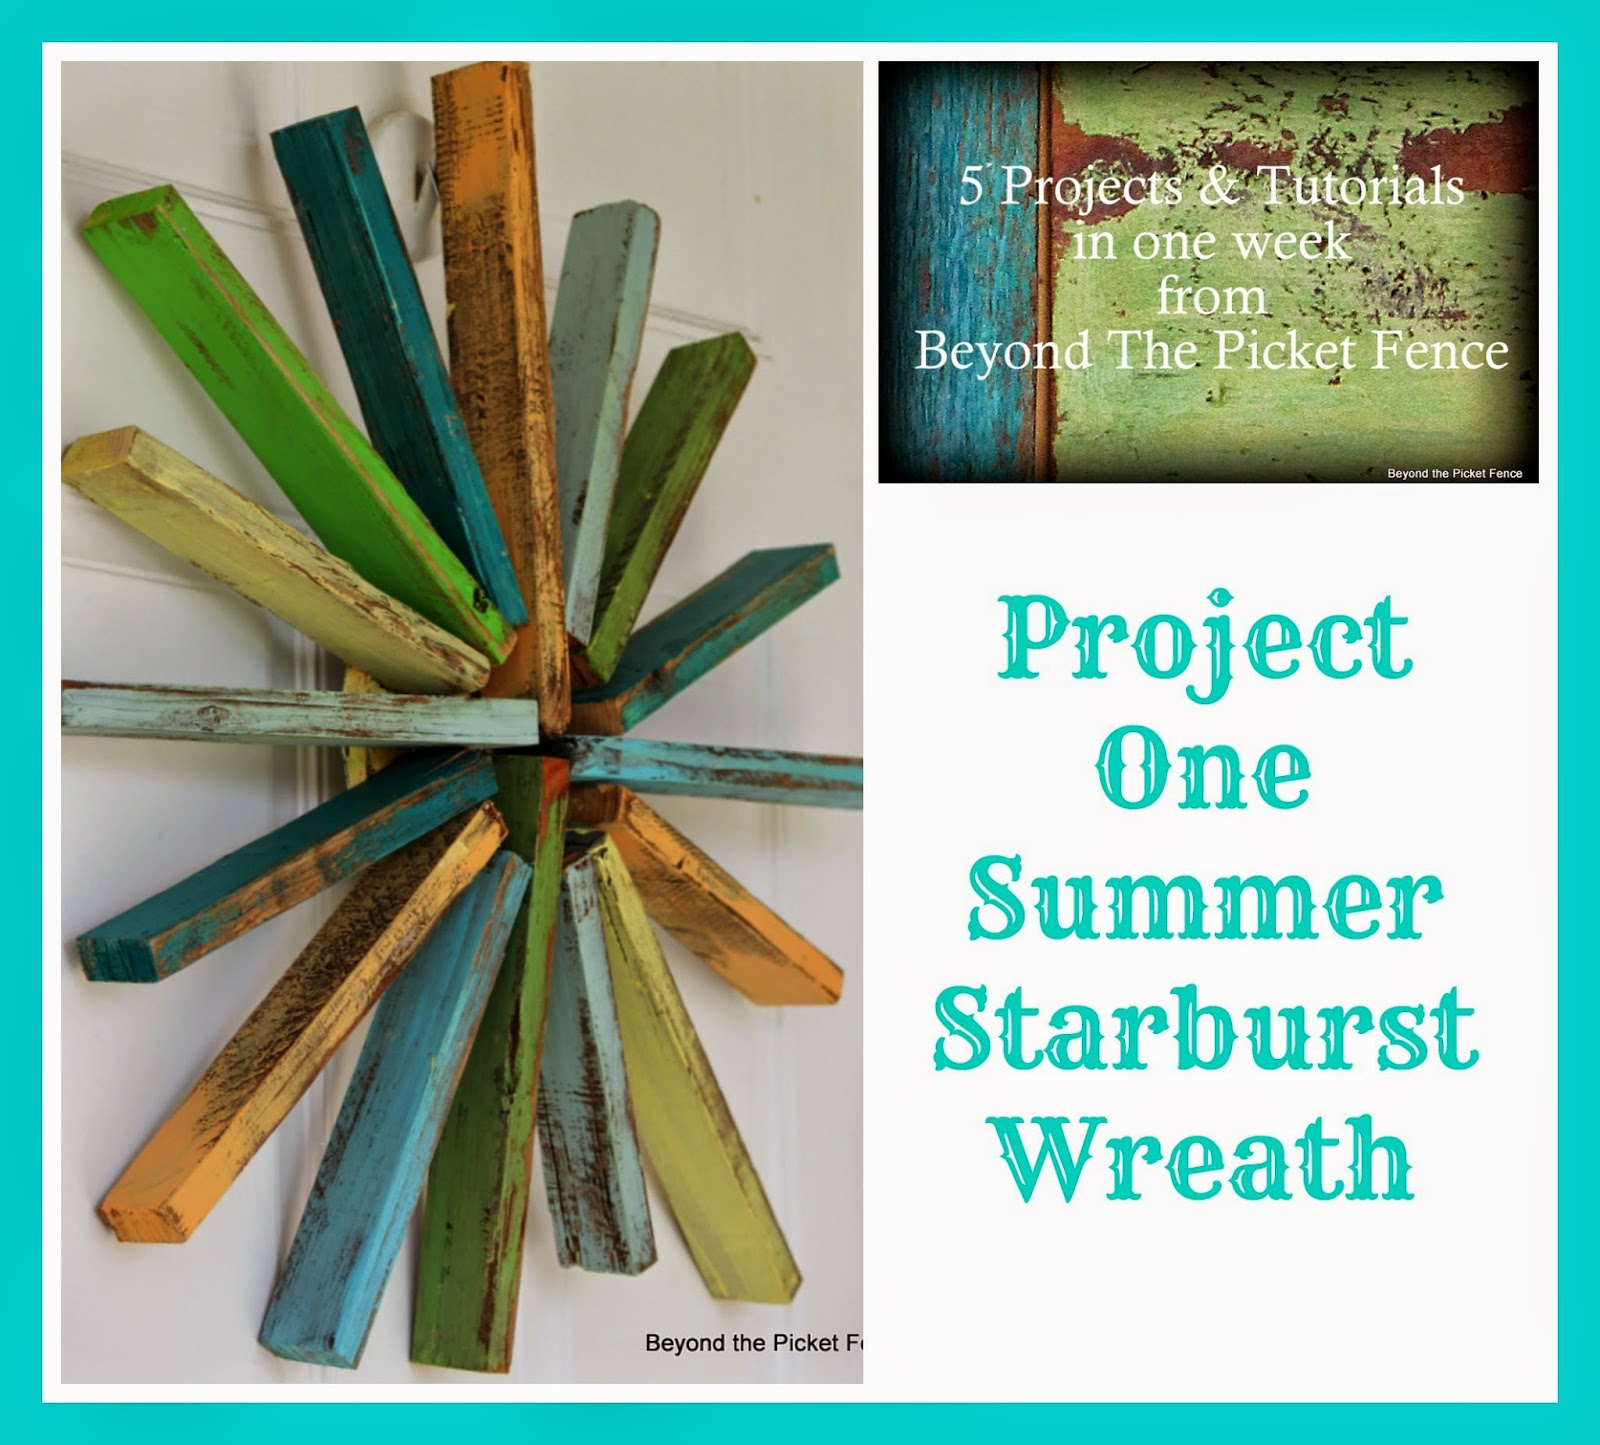 5 projects in a week starburst summer wreath http://bec4-beyondthepicketfence.blogspot.com/2014/05/5-projects-in-week-project-1-starburst.html